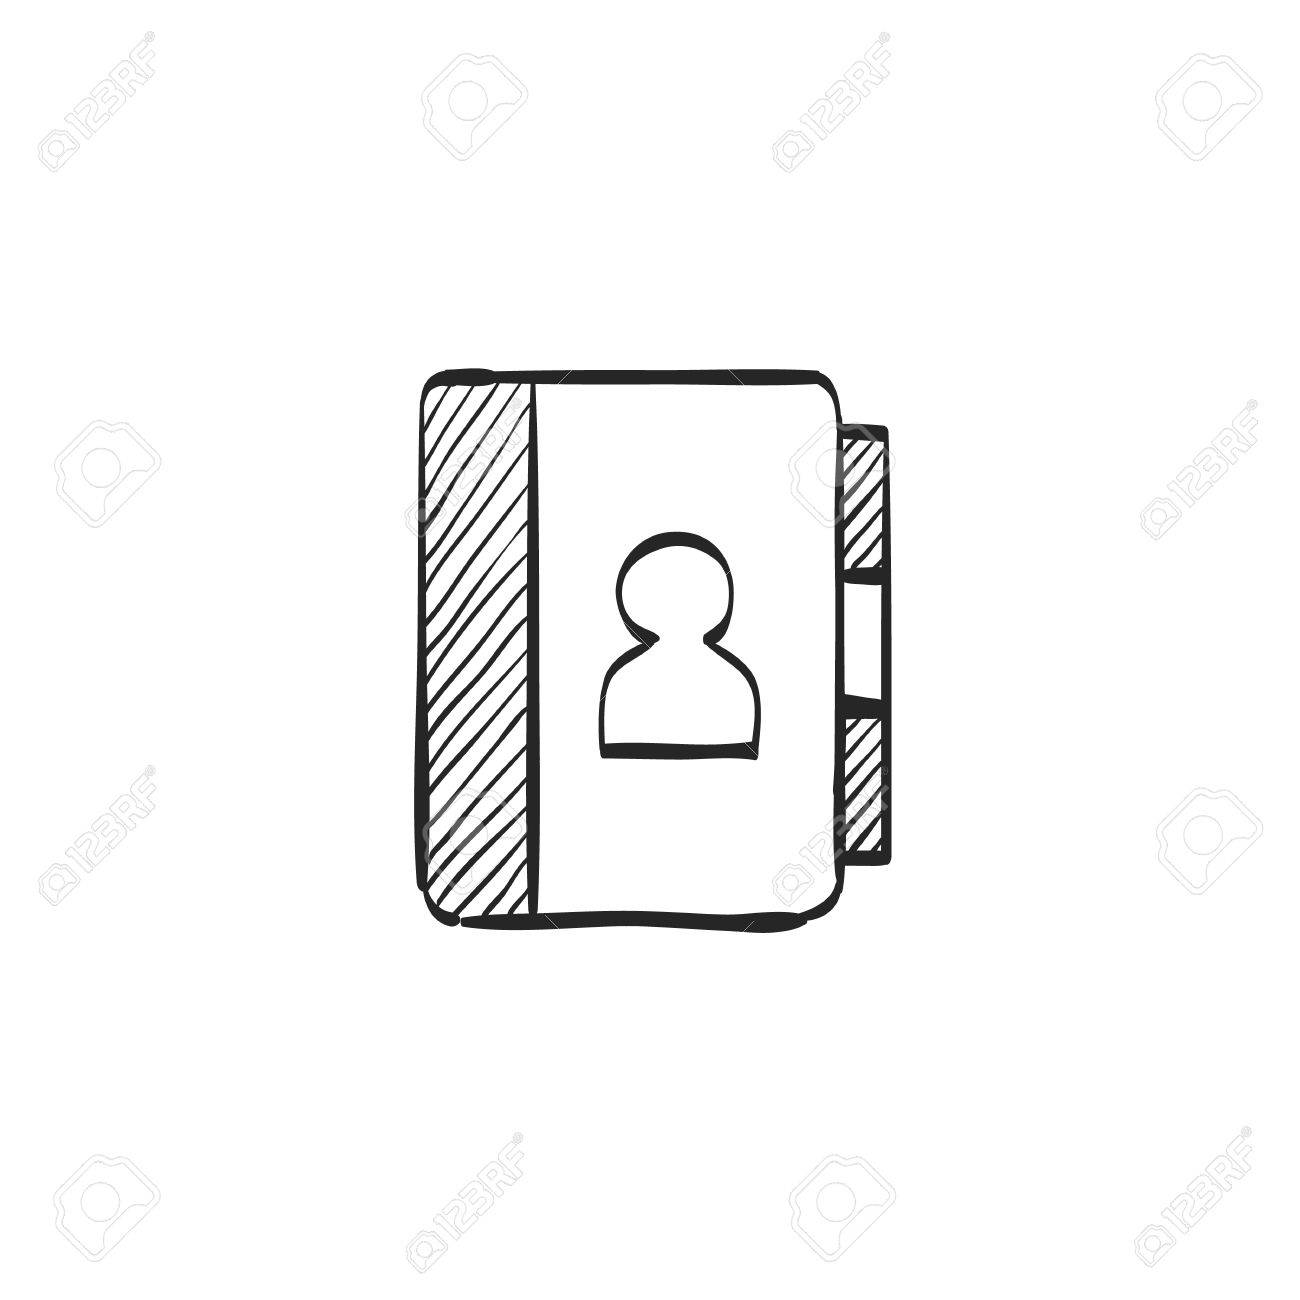 address book icon in doodle sketch lines contact phone list